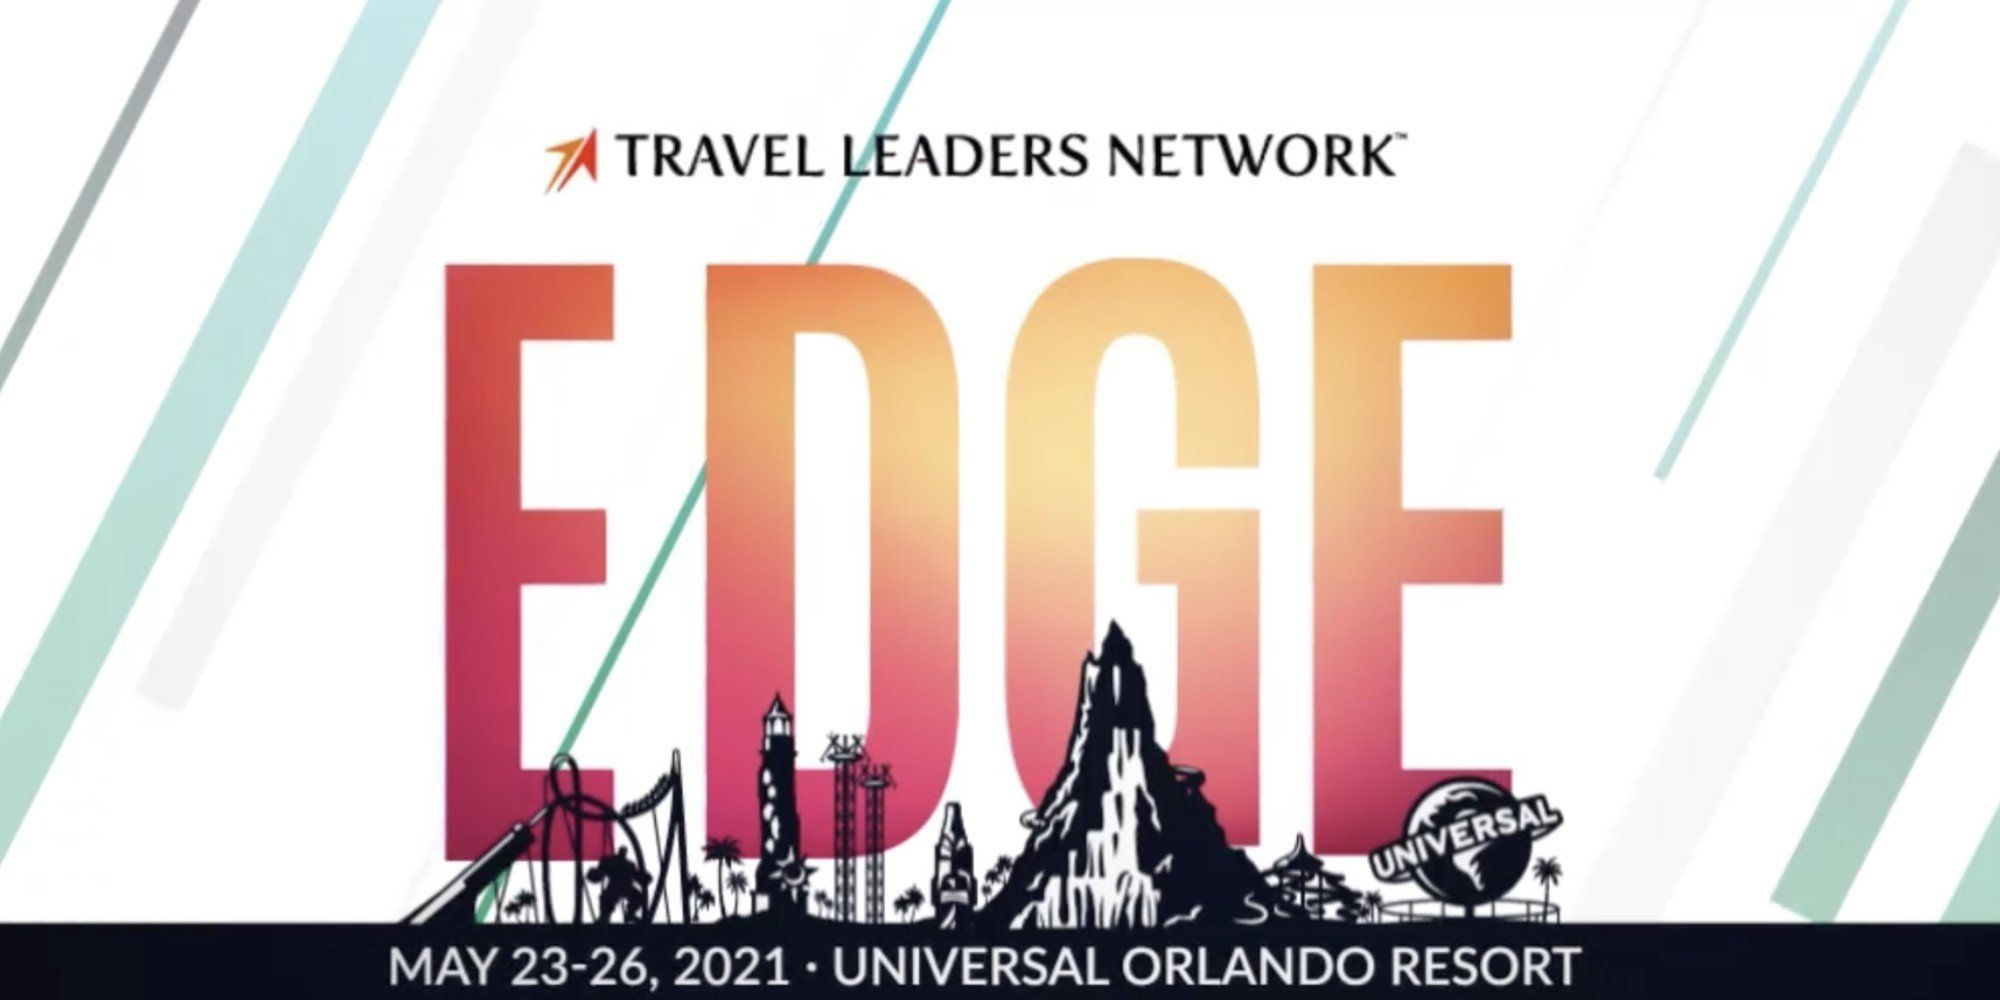 Travel Leader's EDGE Conference